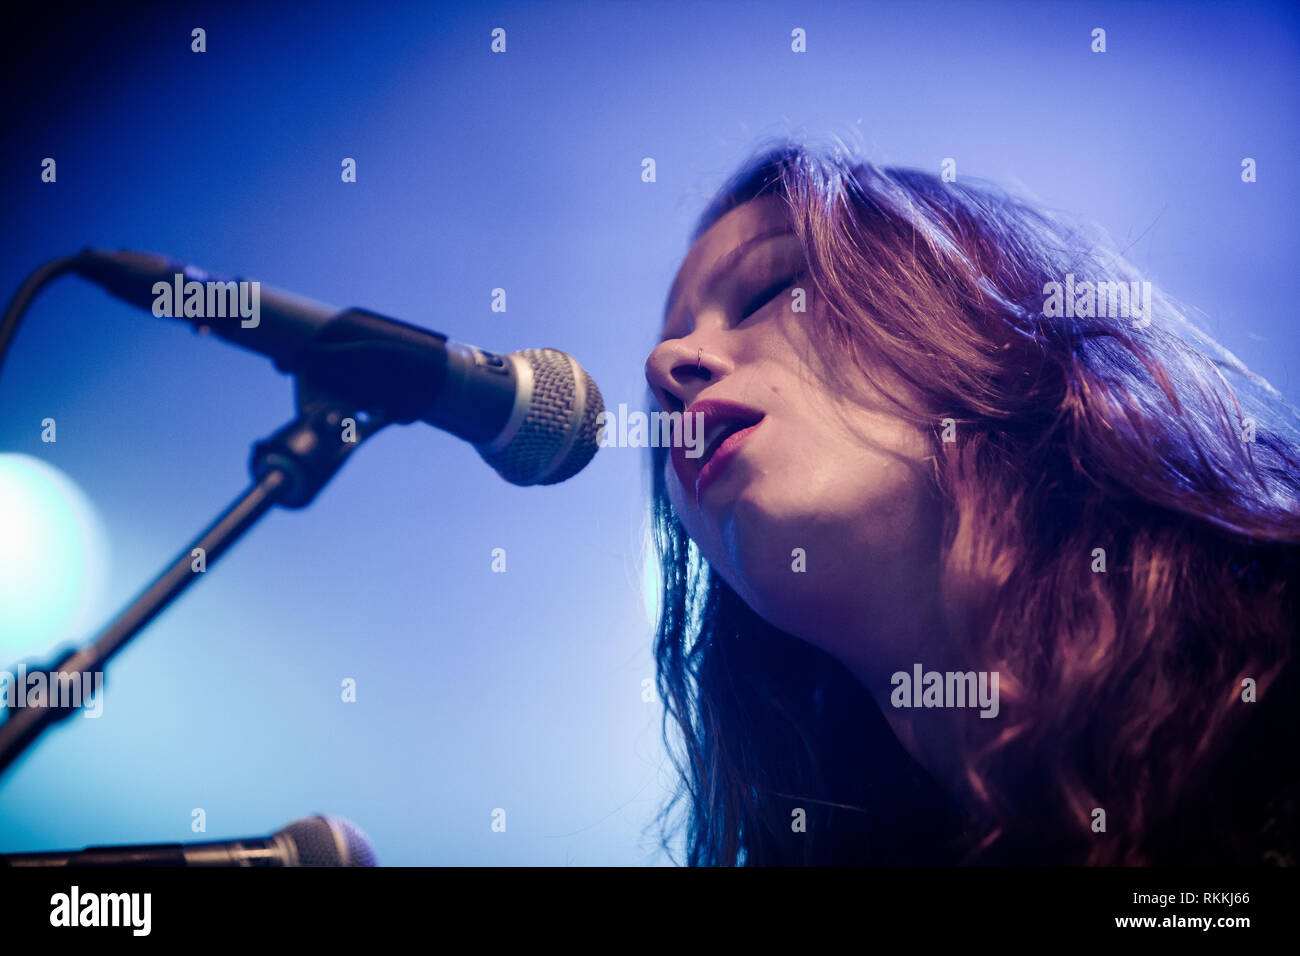 The American band The Lone Bellow performs a live concert at the Danish music festival Jelling Festival 2016. Here singer and musician Kanene Donehey Pipkin is seen live on stage. Denmark, 28/05 2016. EXCLUDING DENMARK. Stock Photo